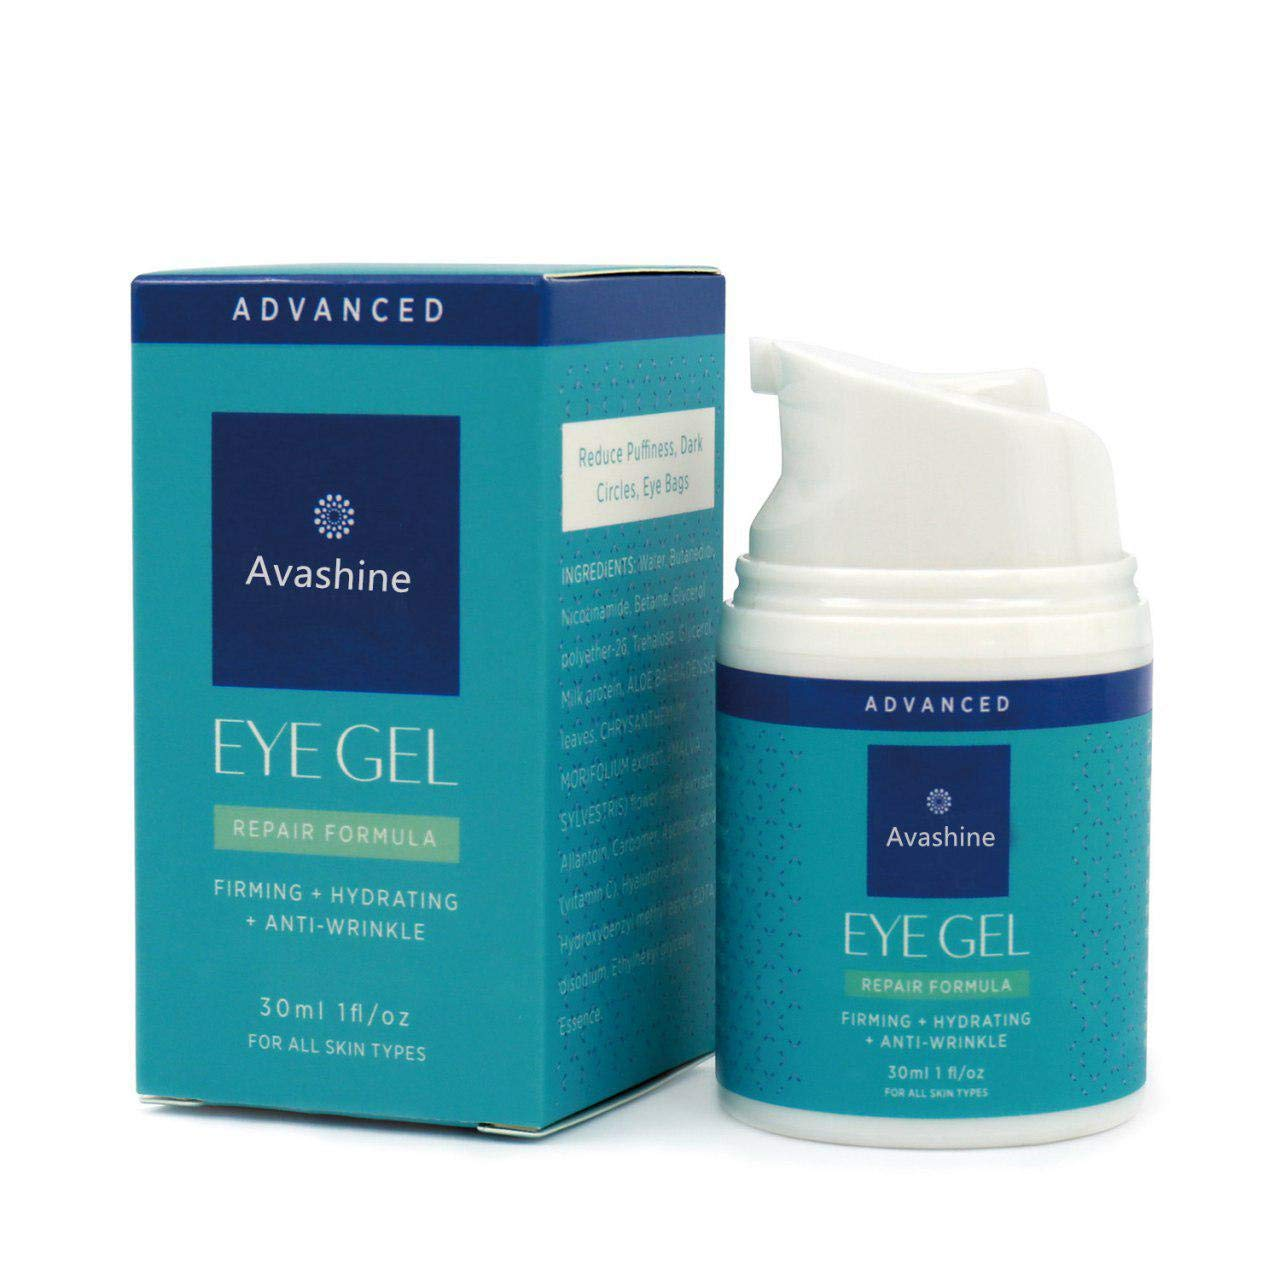 Avashine Natural Eye Gel for Dark Circles, Puffiness, Wrinkles and Eye Bags, Hydrating Eye Serum, Effective Anti-Aging Eye Gel for Under and Around Eyes by Avashine